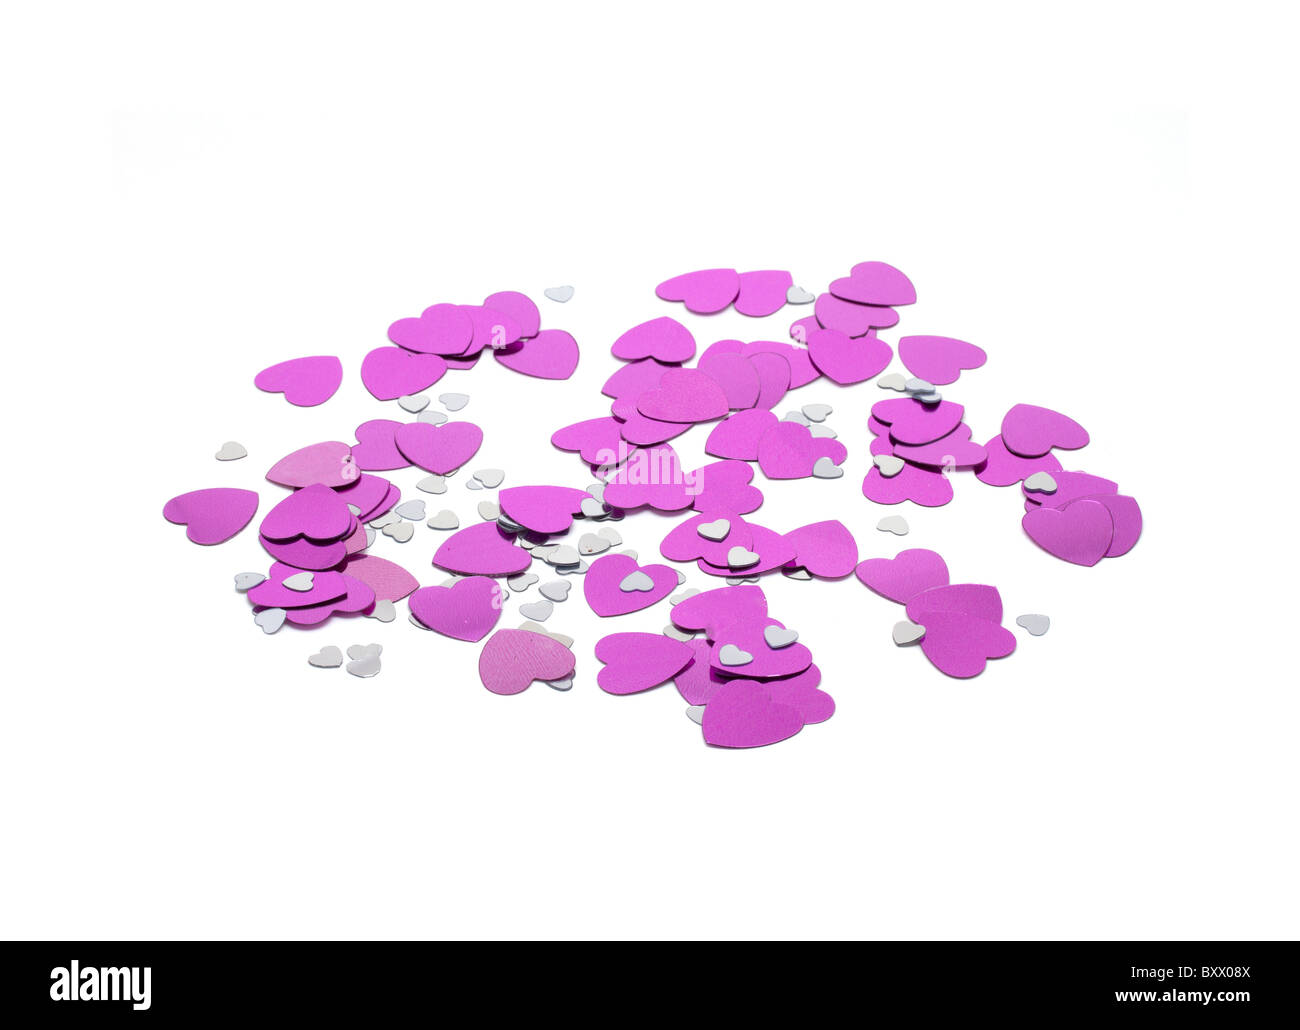 Pink and silver heart shaped confetti on white background - Stock Image